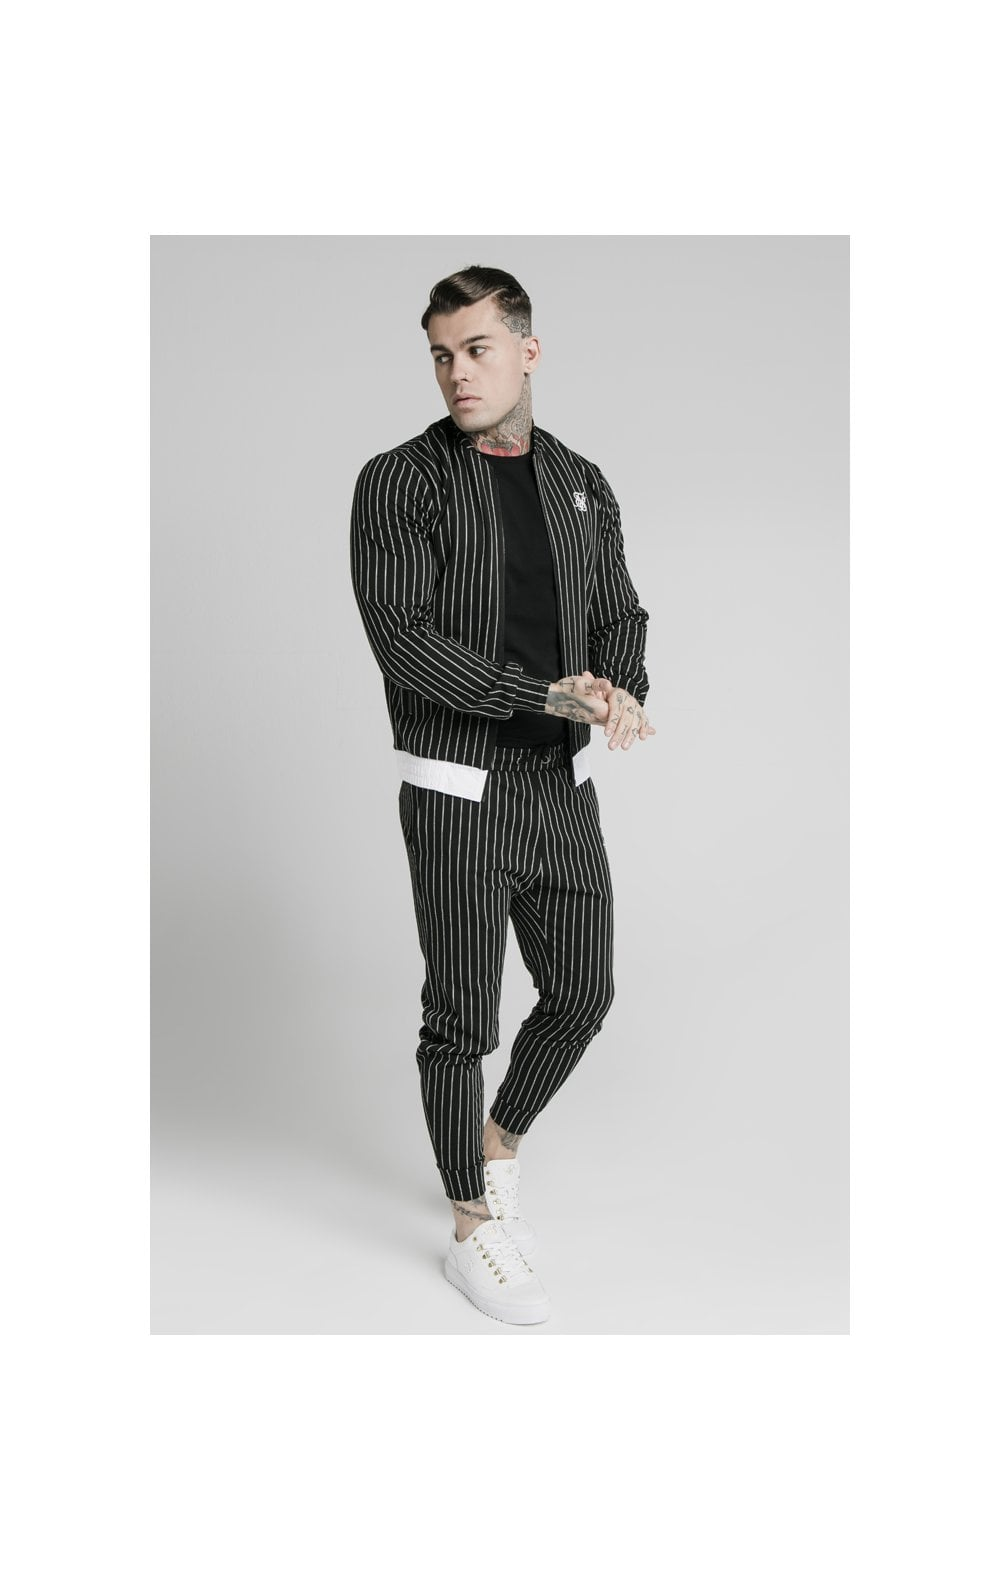 SikSilk Pinstripe Bomber Jacket - Black & White (2)